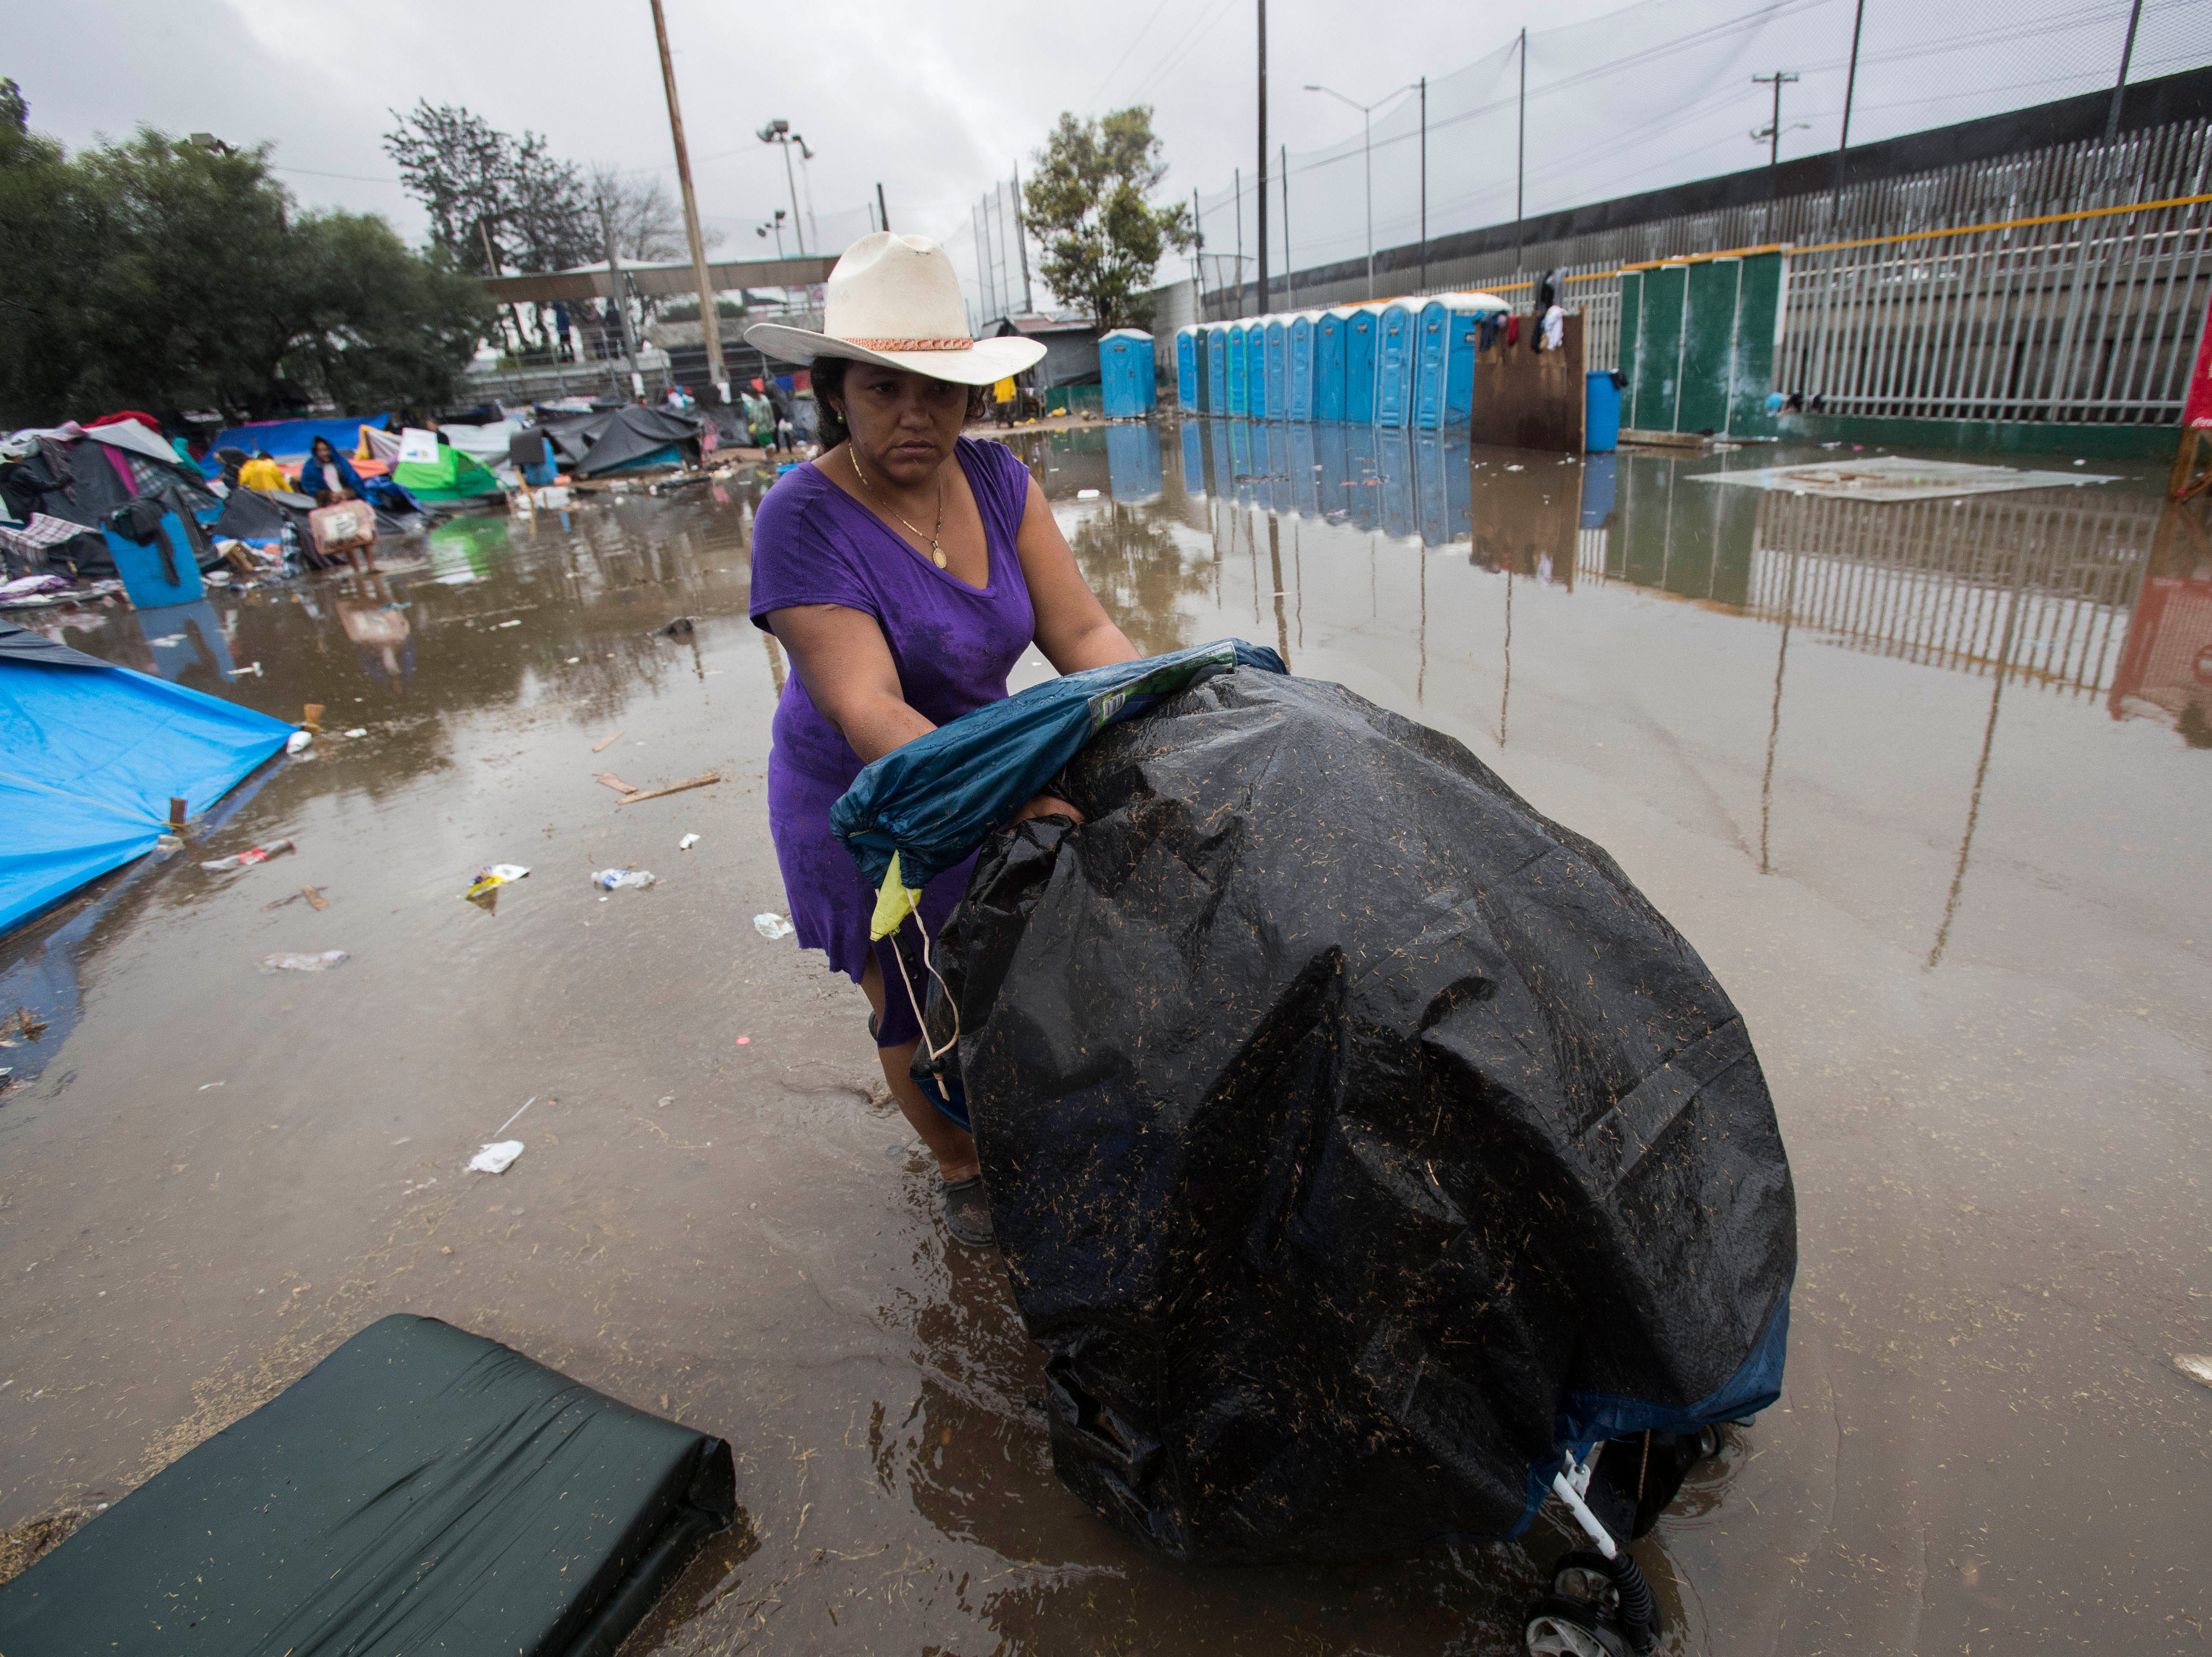 A a woman pushing a stroller holding her belongings through dirty water in Tijuana, Mexico on Nov. 29, 2018. The Benito Juarez sports complex, which is serving as a shelter for over 5000 caravan migrants, was drenched with heavy rains, causing already precarious living conditions to worsen.